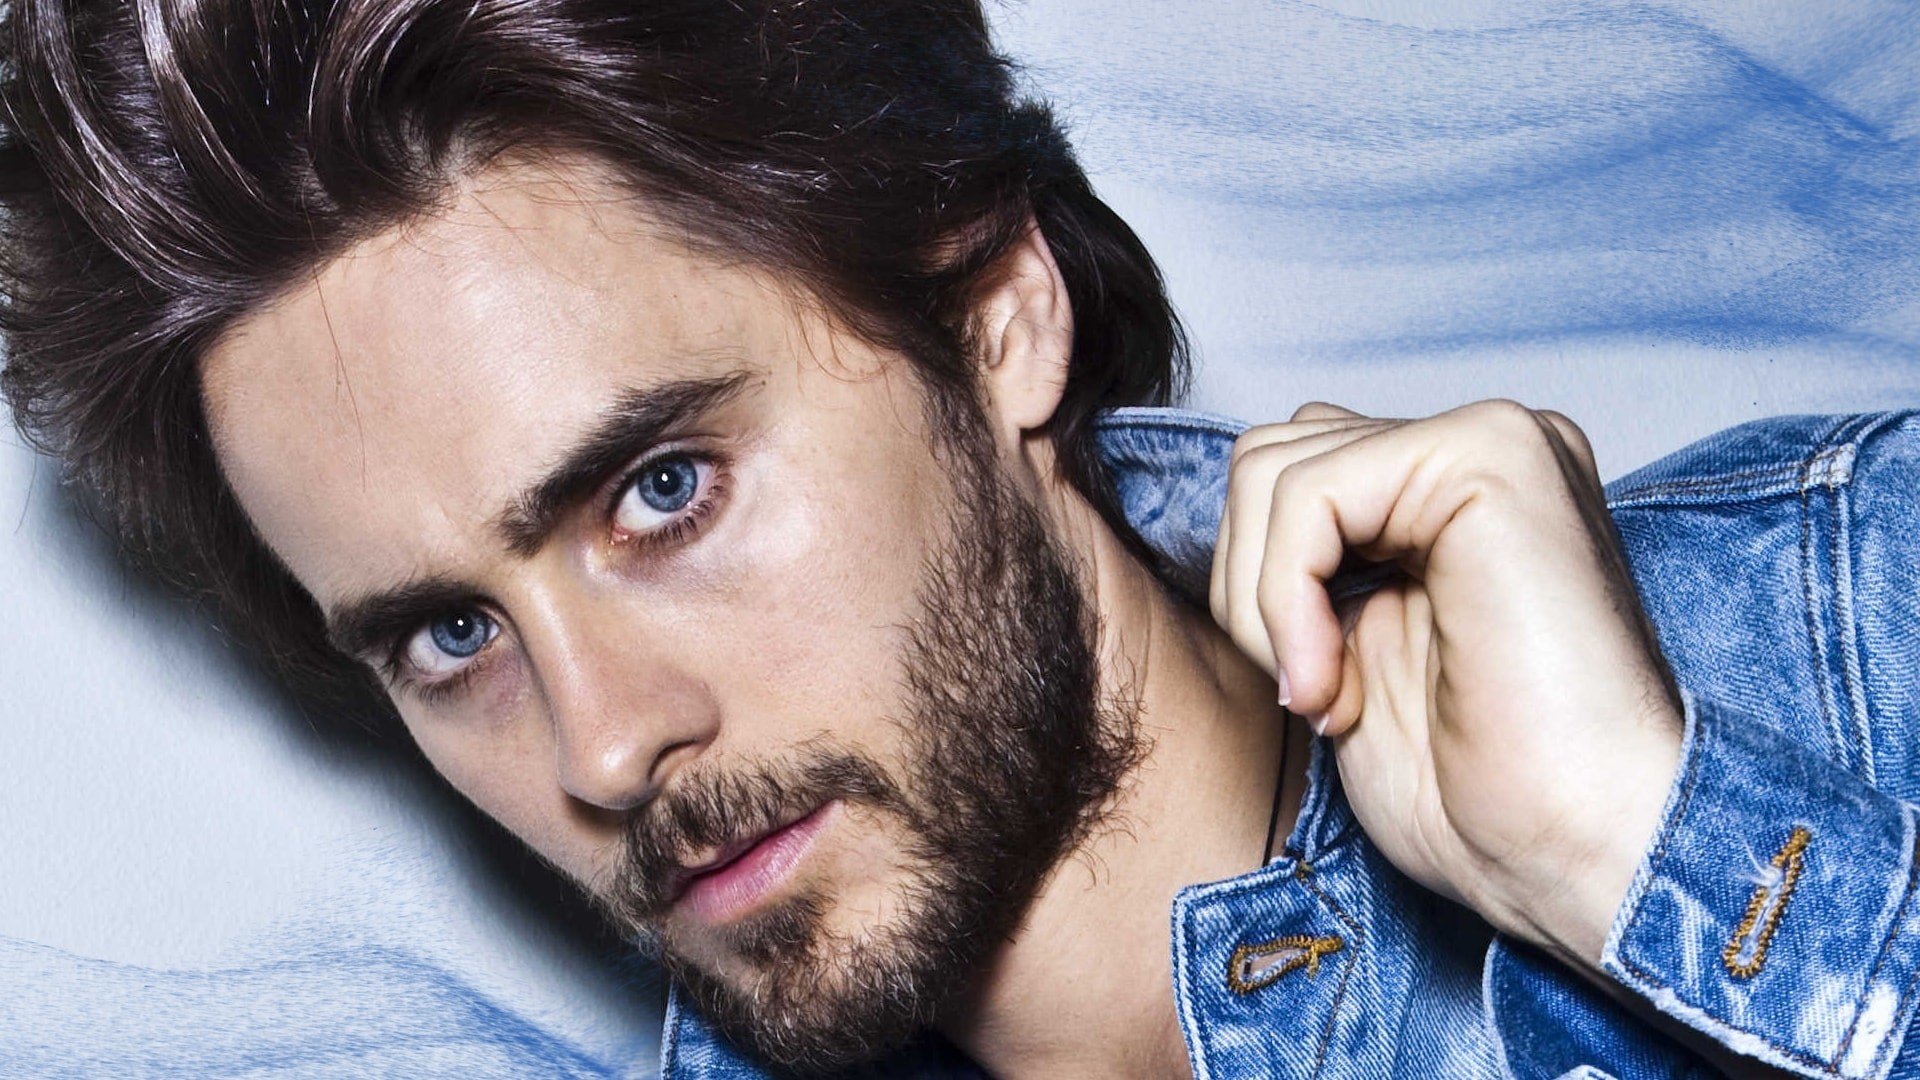 Jared Leto Wallpapers 69 Pictures